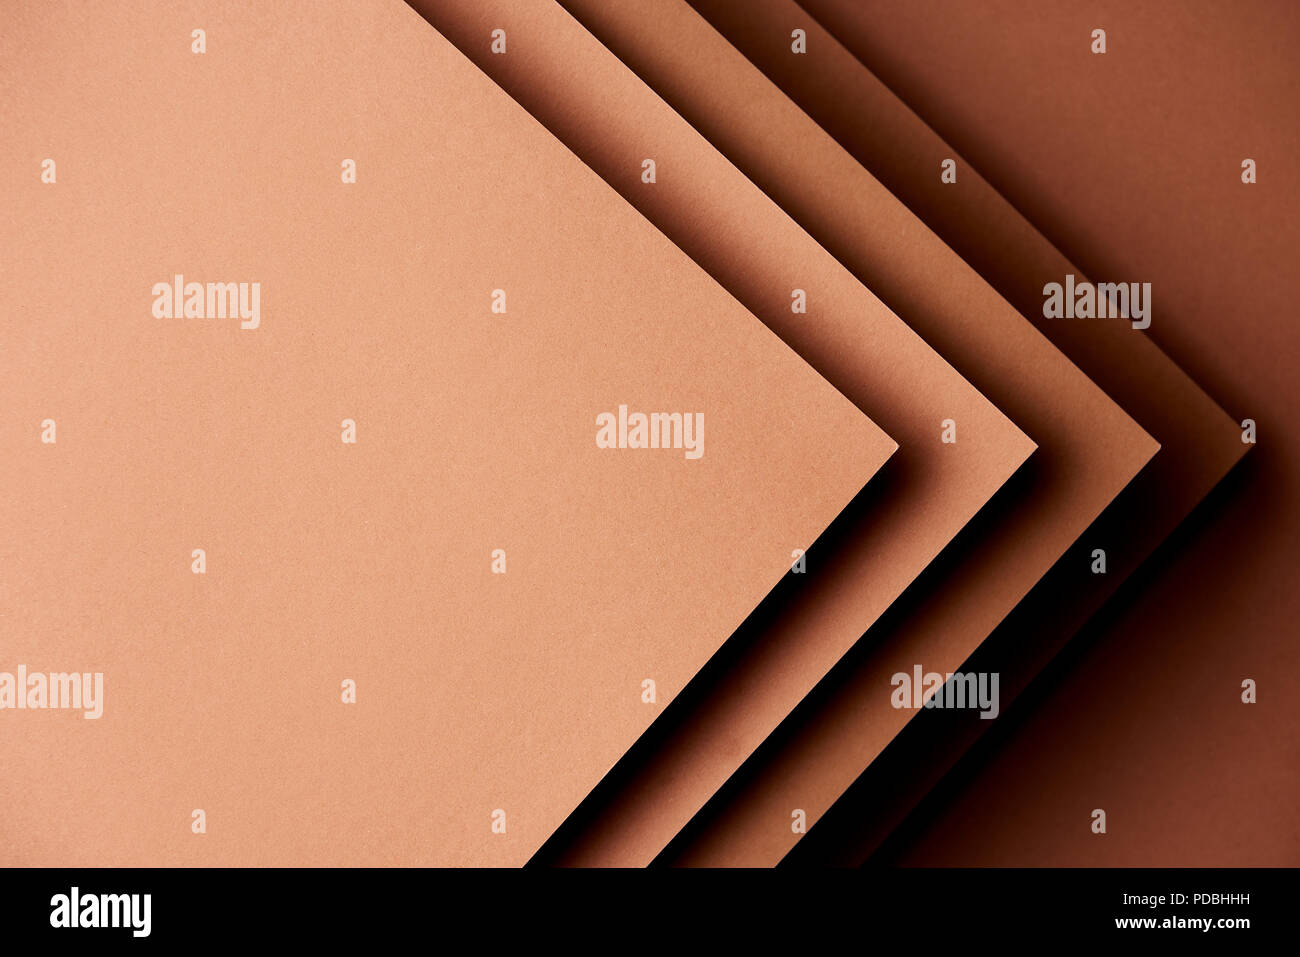 Paper sheets in brown tones background - Stock Image